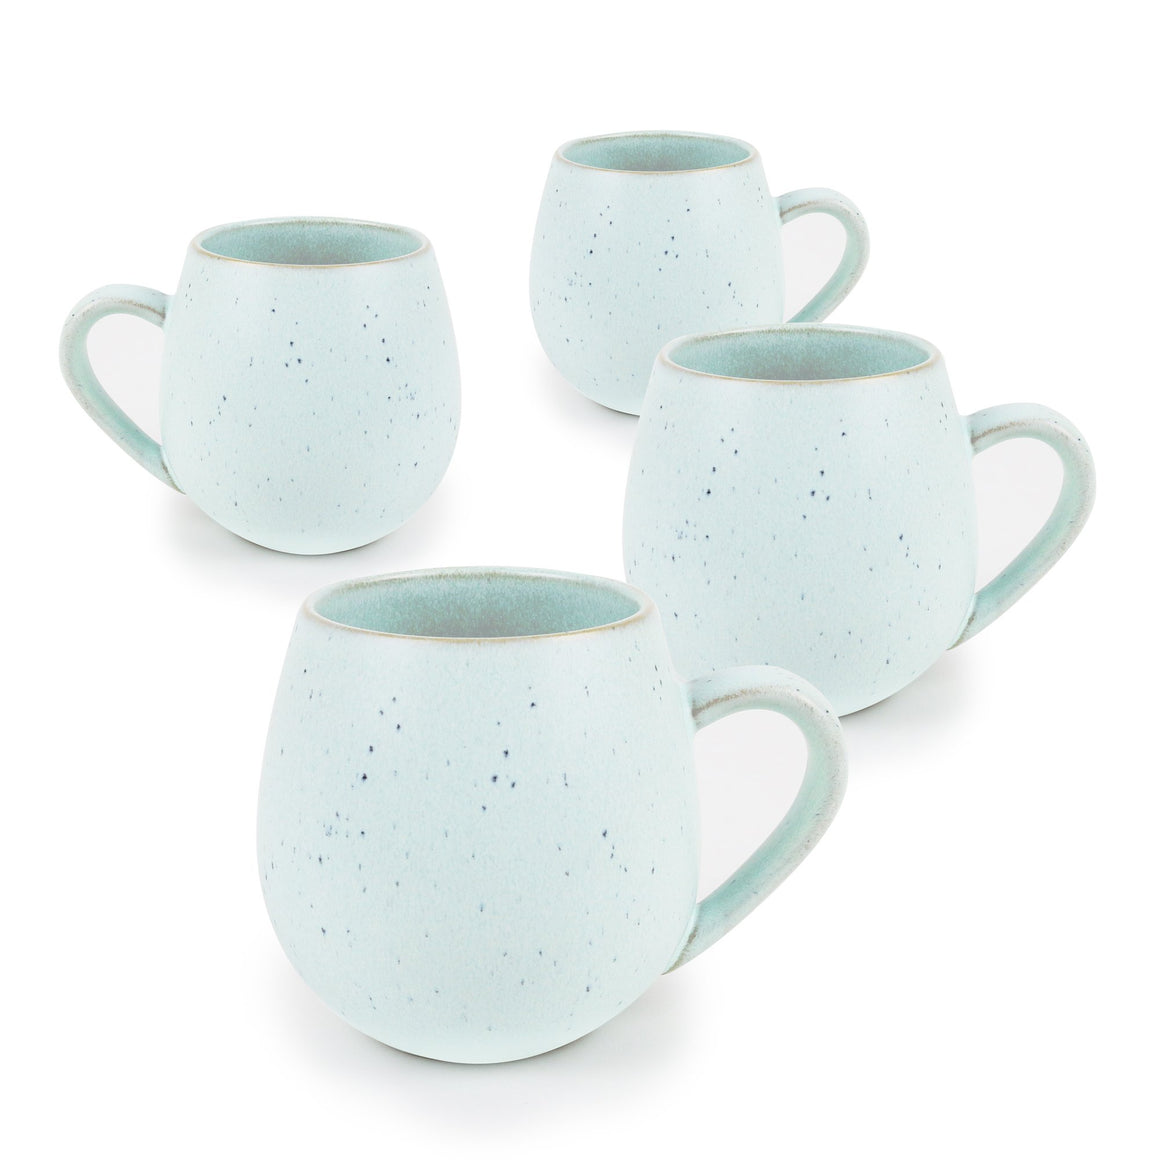 Hug Me Mug - Speckled Green